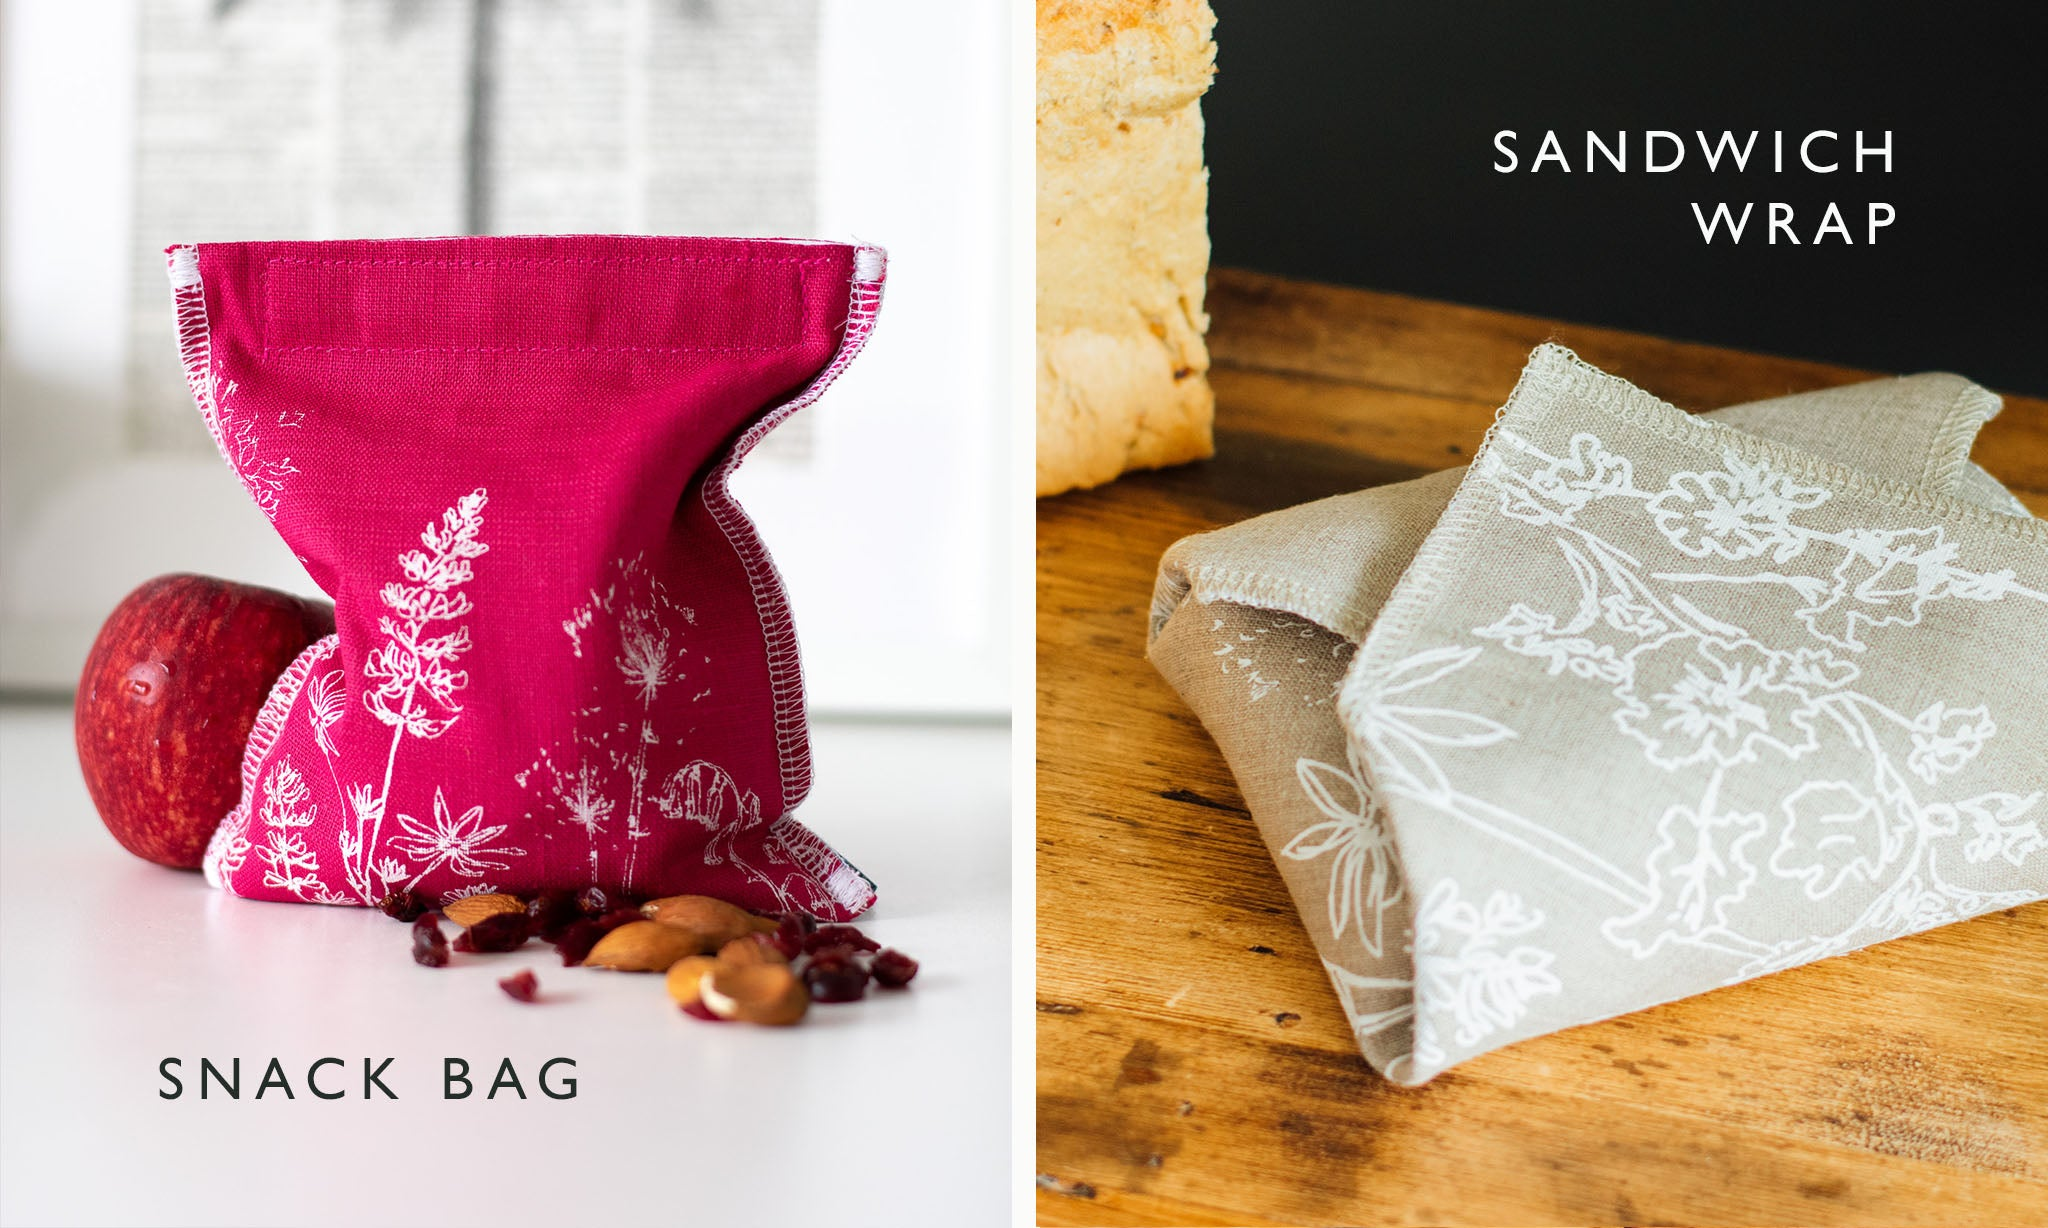 Sandwich Wrap and Snack Bag